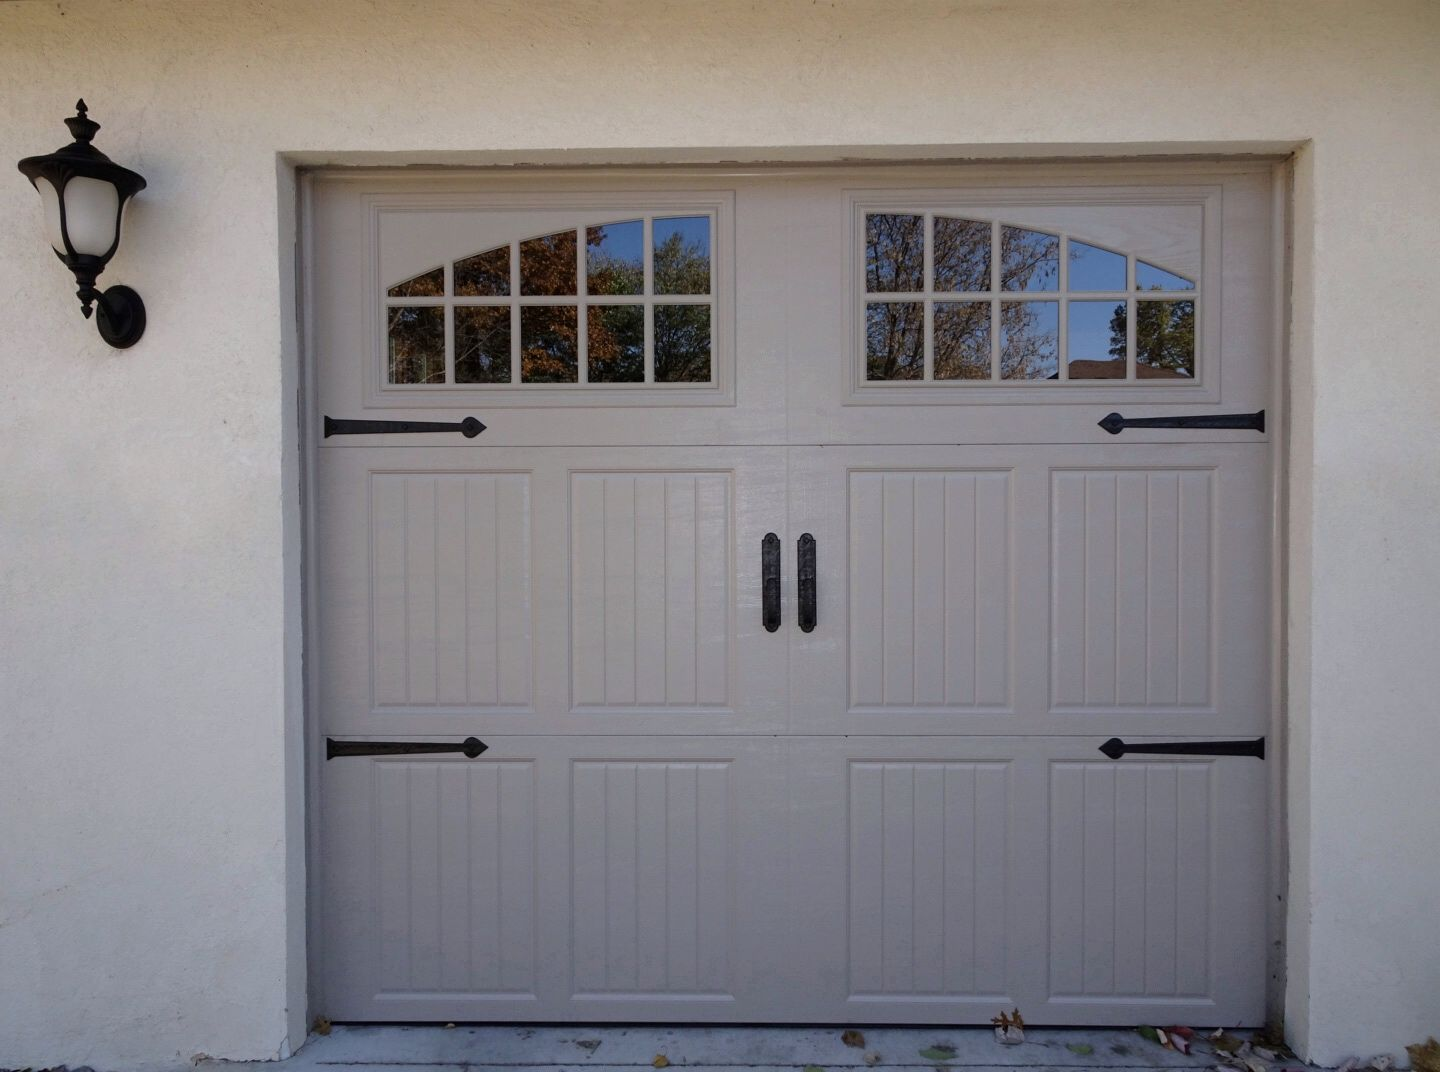 Amarr Classica Garage Door In Sandtone With Tuscany Panels And Seine Windows Garage Doors Carriage Garage Doors Steel Garage Doors